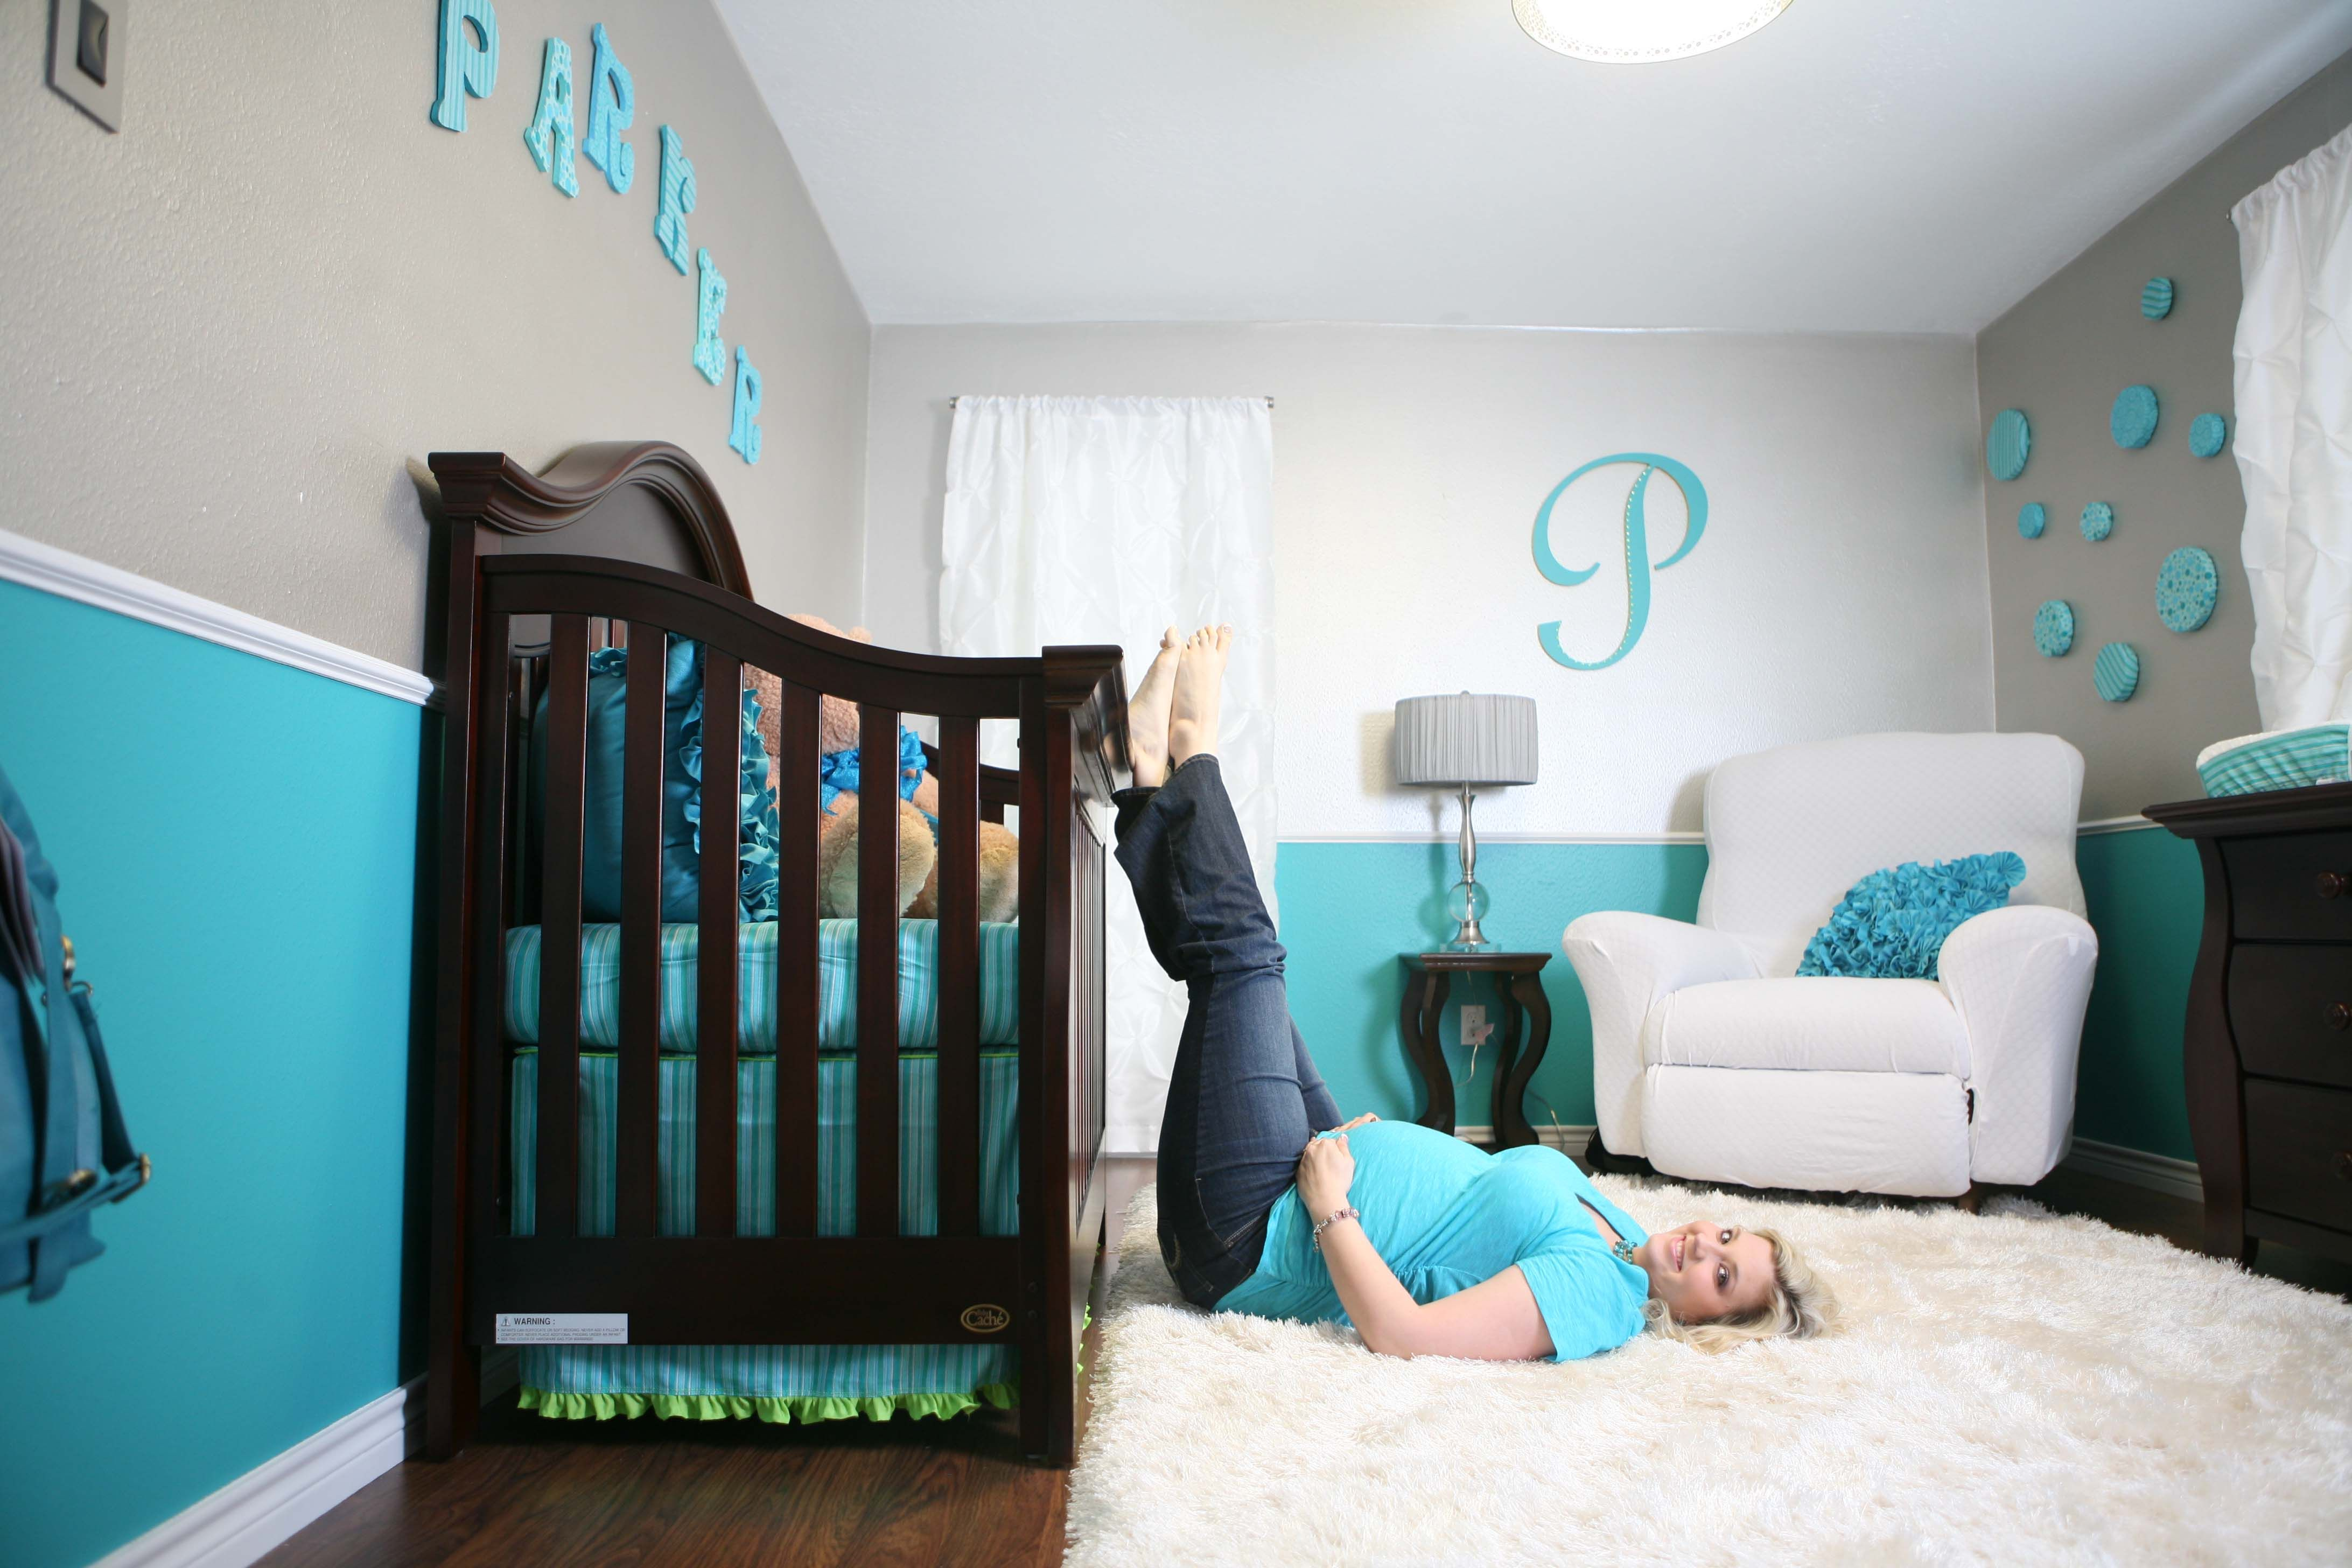 17 Best images about My baby boy s nursery   on Pinterest   Closet  organization  Grey walls and Leather rugs. 17 Best images about My baby boy s nursery   on Pinterest